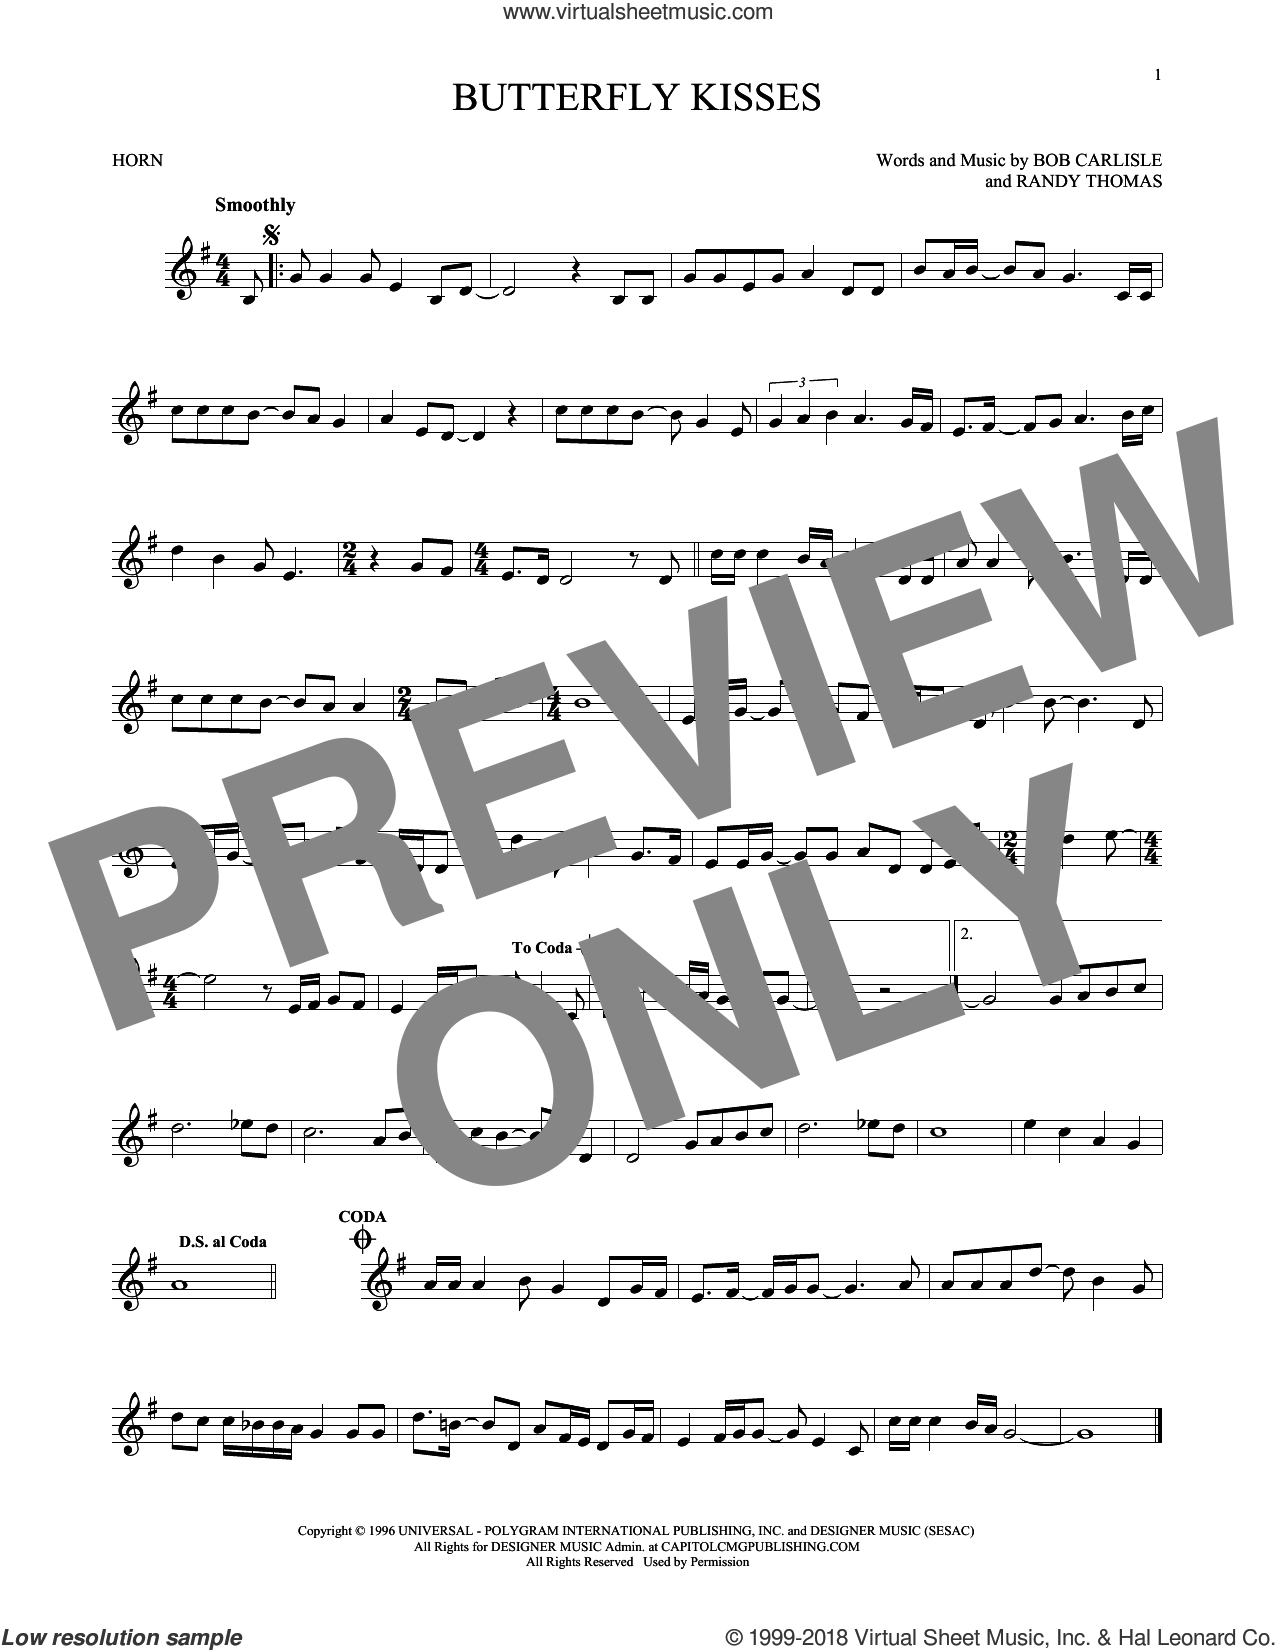 Butterfly Kisses sheet music for horn solo by Bob Carlisle, Jeff Carson and Randy Thomas, wedding score, intermediate skill level